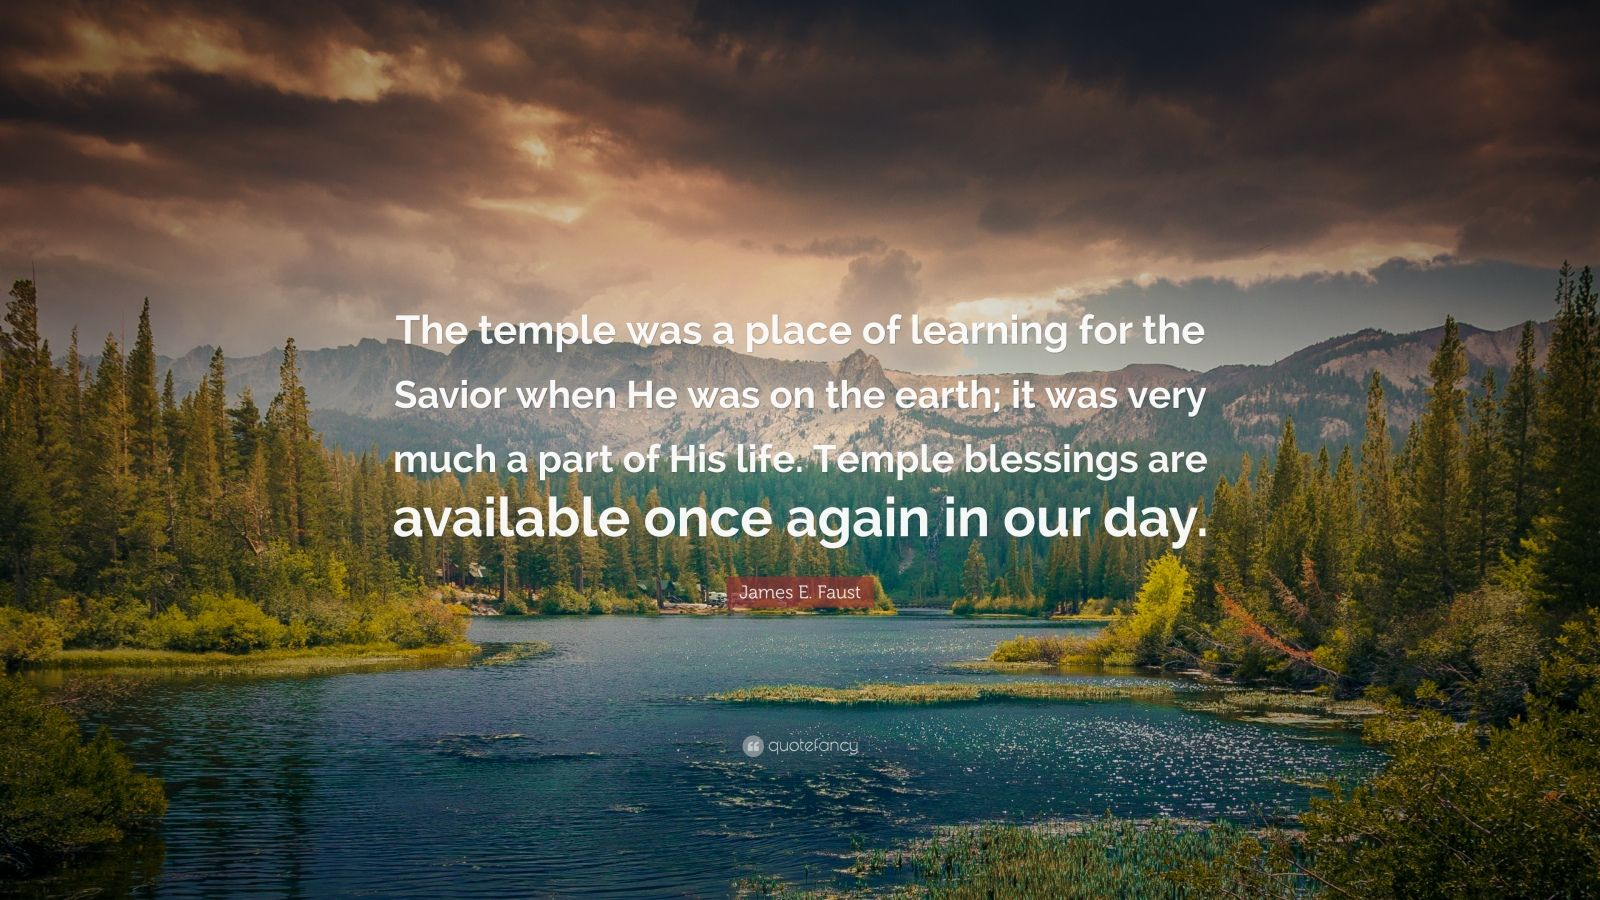 "James E. Faust Quote: ""The temple was a place of learning for the Savior when He was on the earth; it was very much a part of His life. Temple blessings are available once again in our day."""